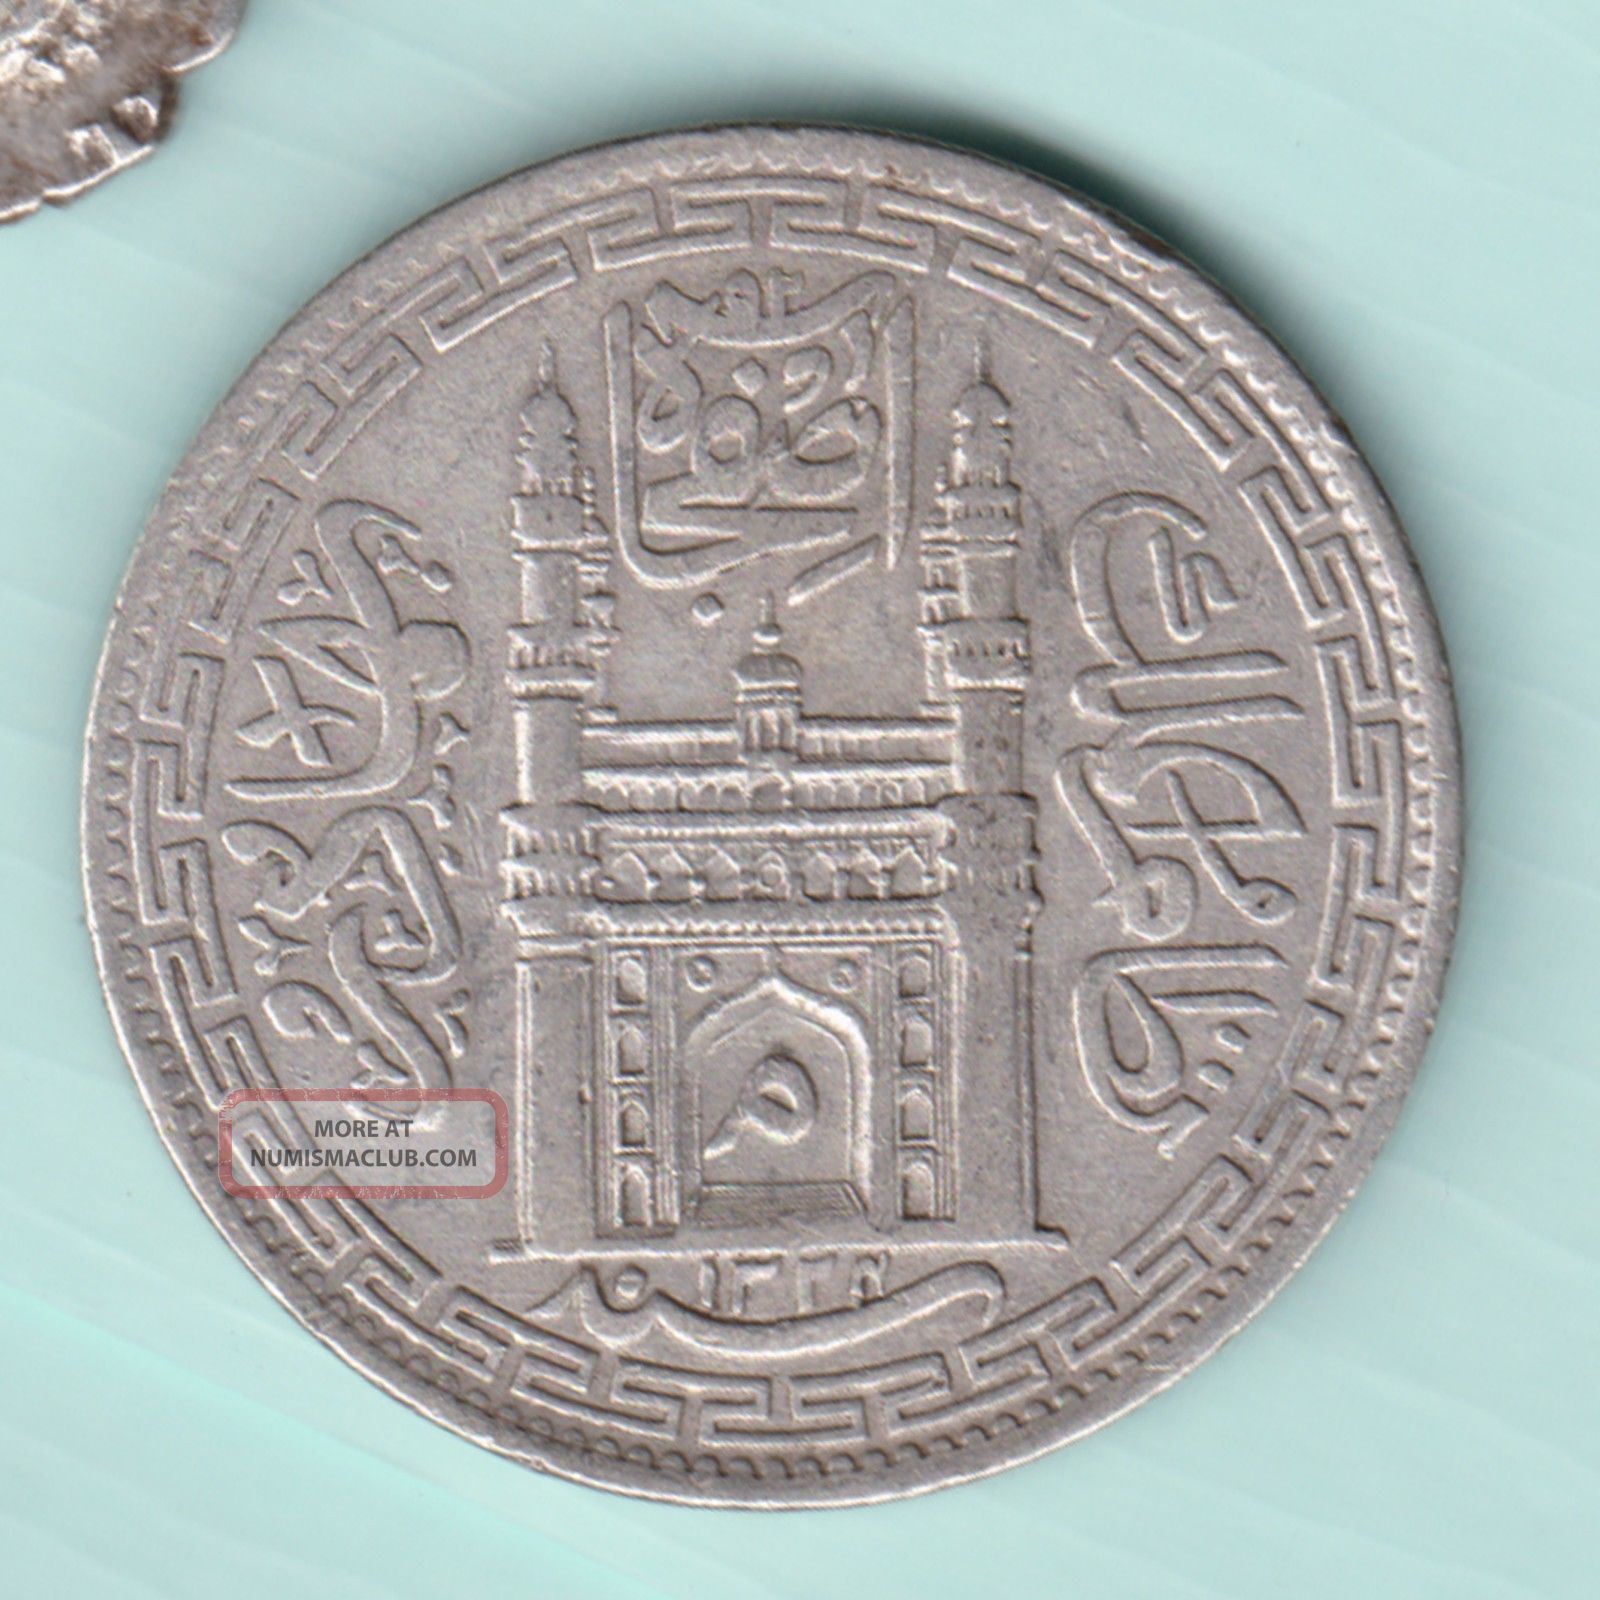 Hyderabad State - Ah 1324 - Mim On Doorway - One Rupee - Rare Silver Coin India photo